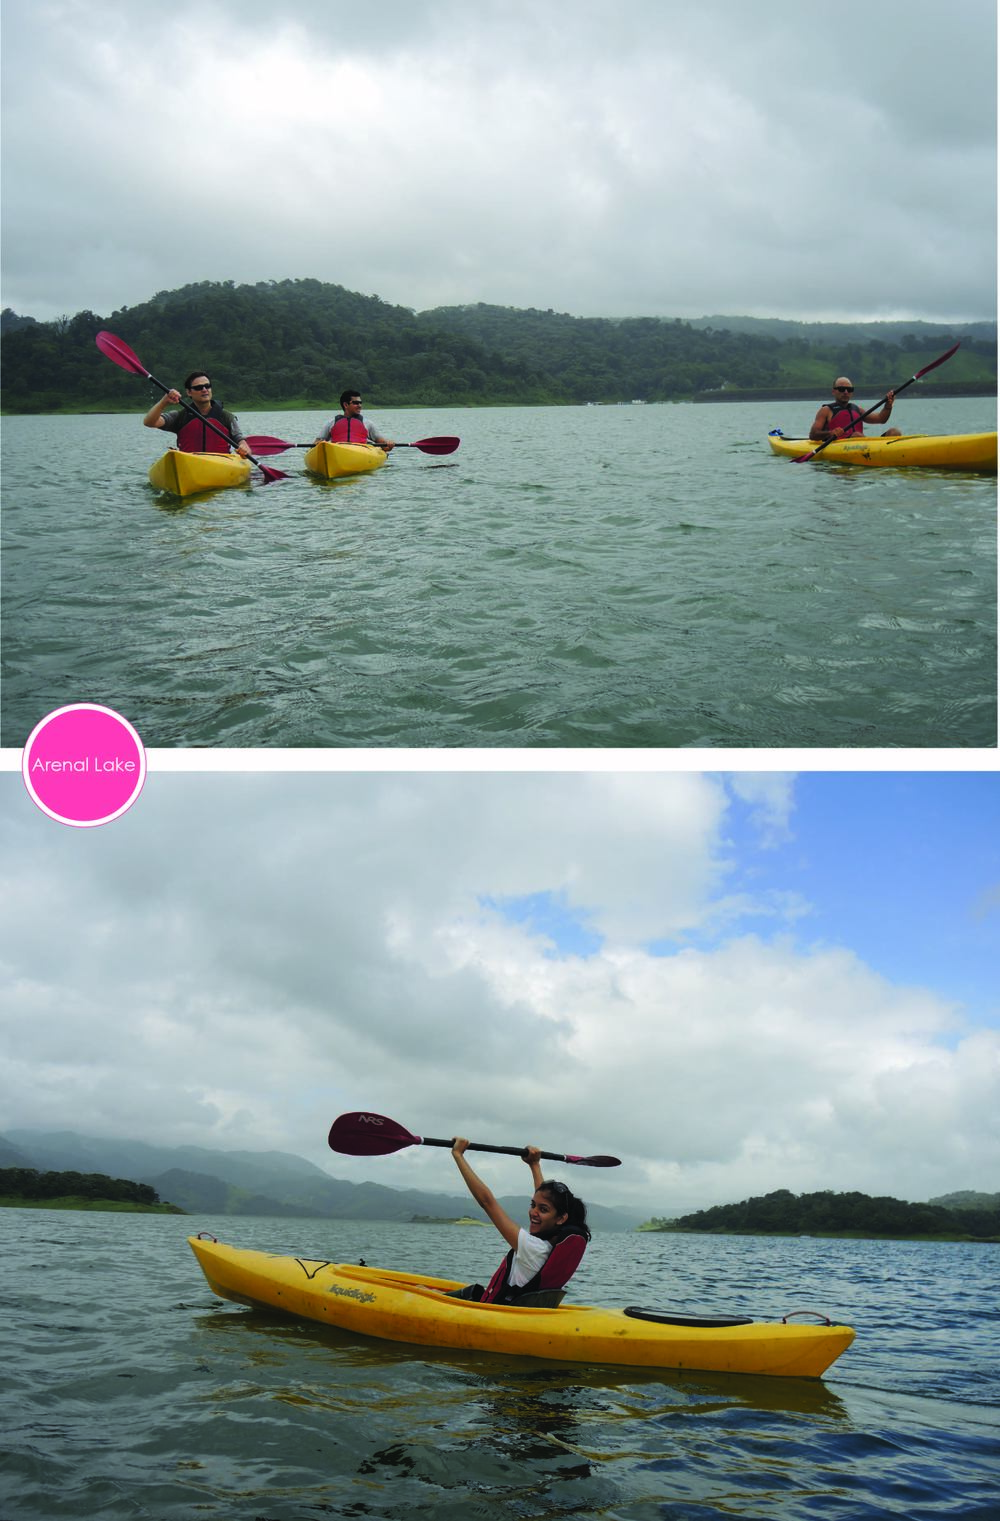 I did it! Wooo! Thats us kayaking Lake Arenal.